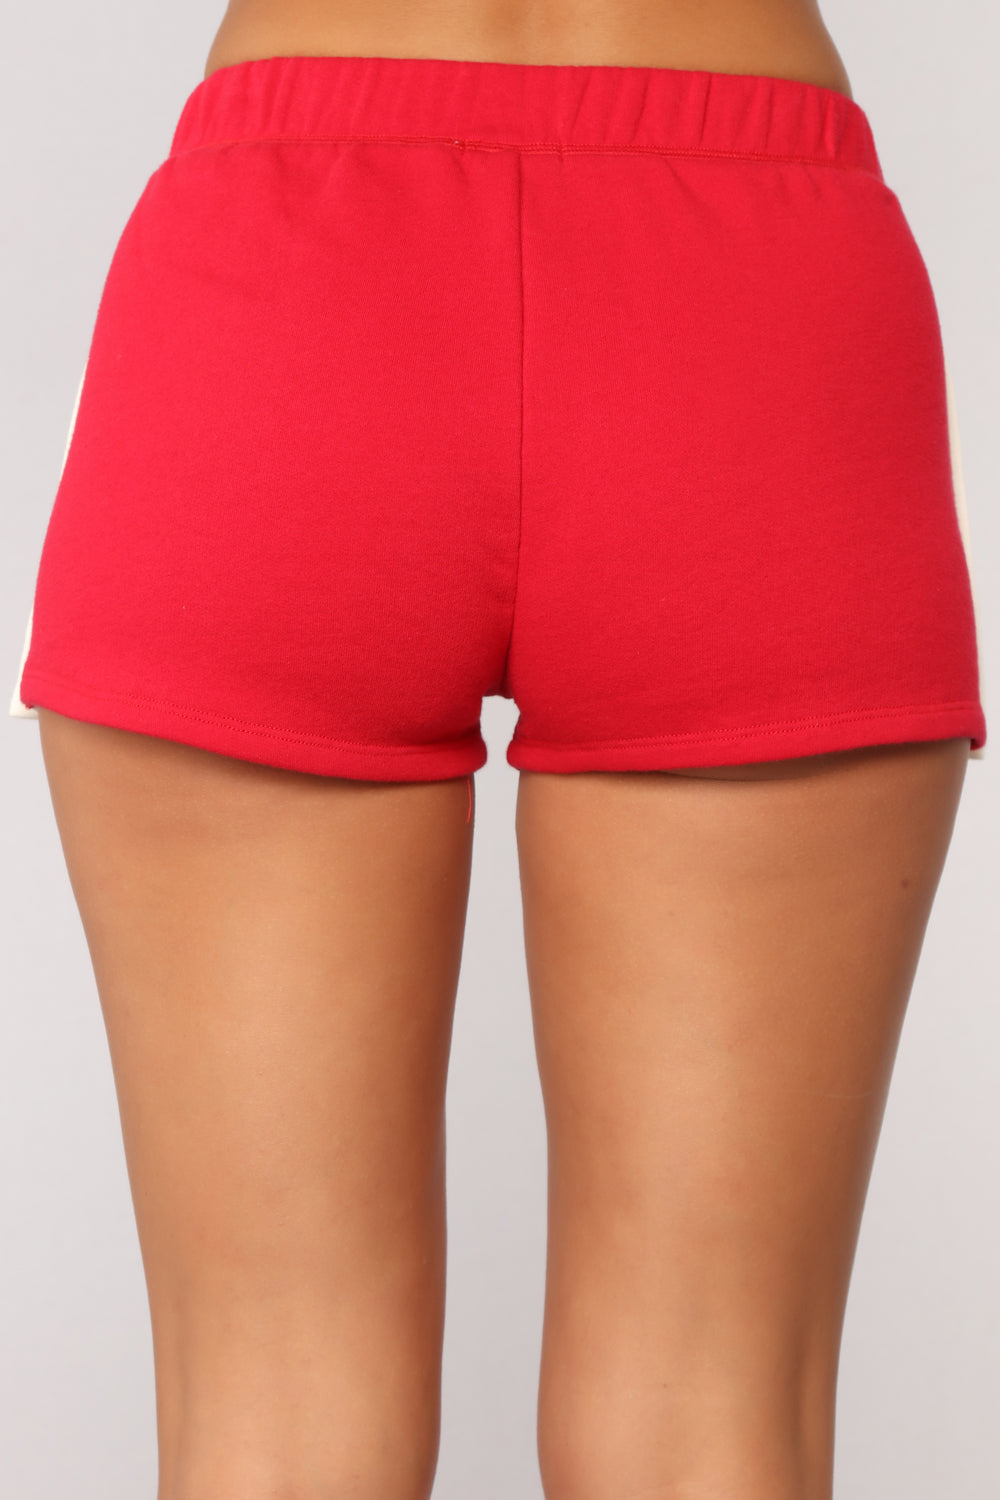 One More Rep Snap Shorts - Red